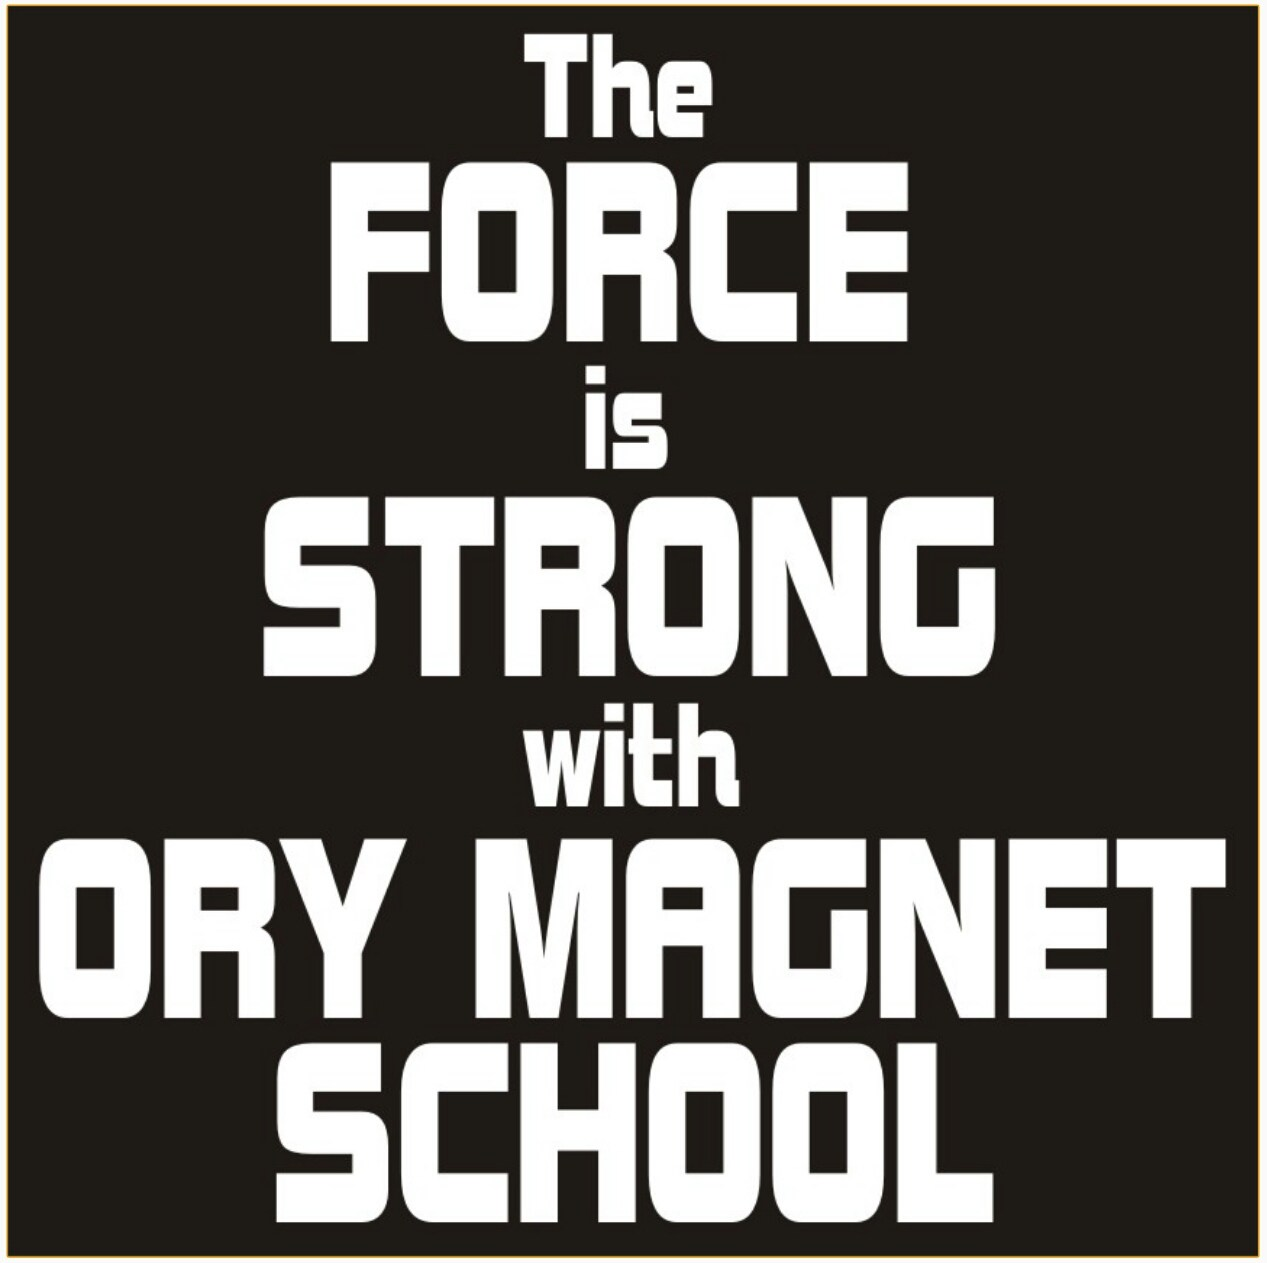 The force is strong with org magnet school